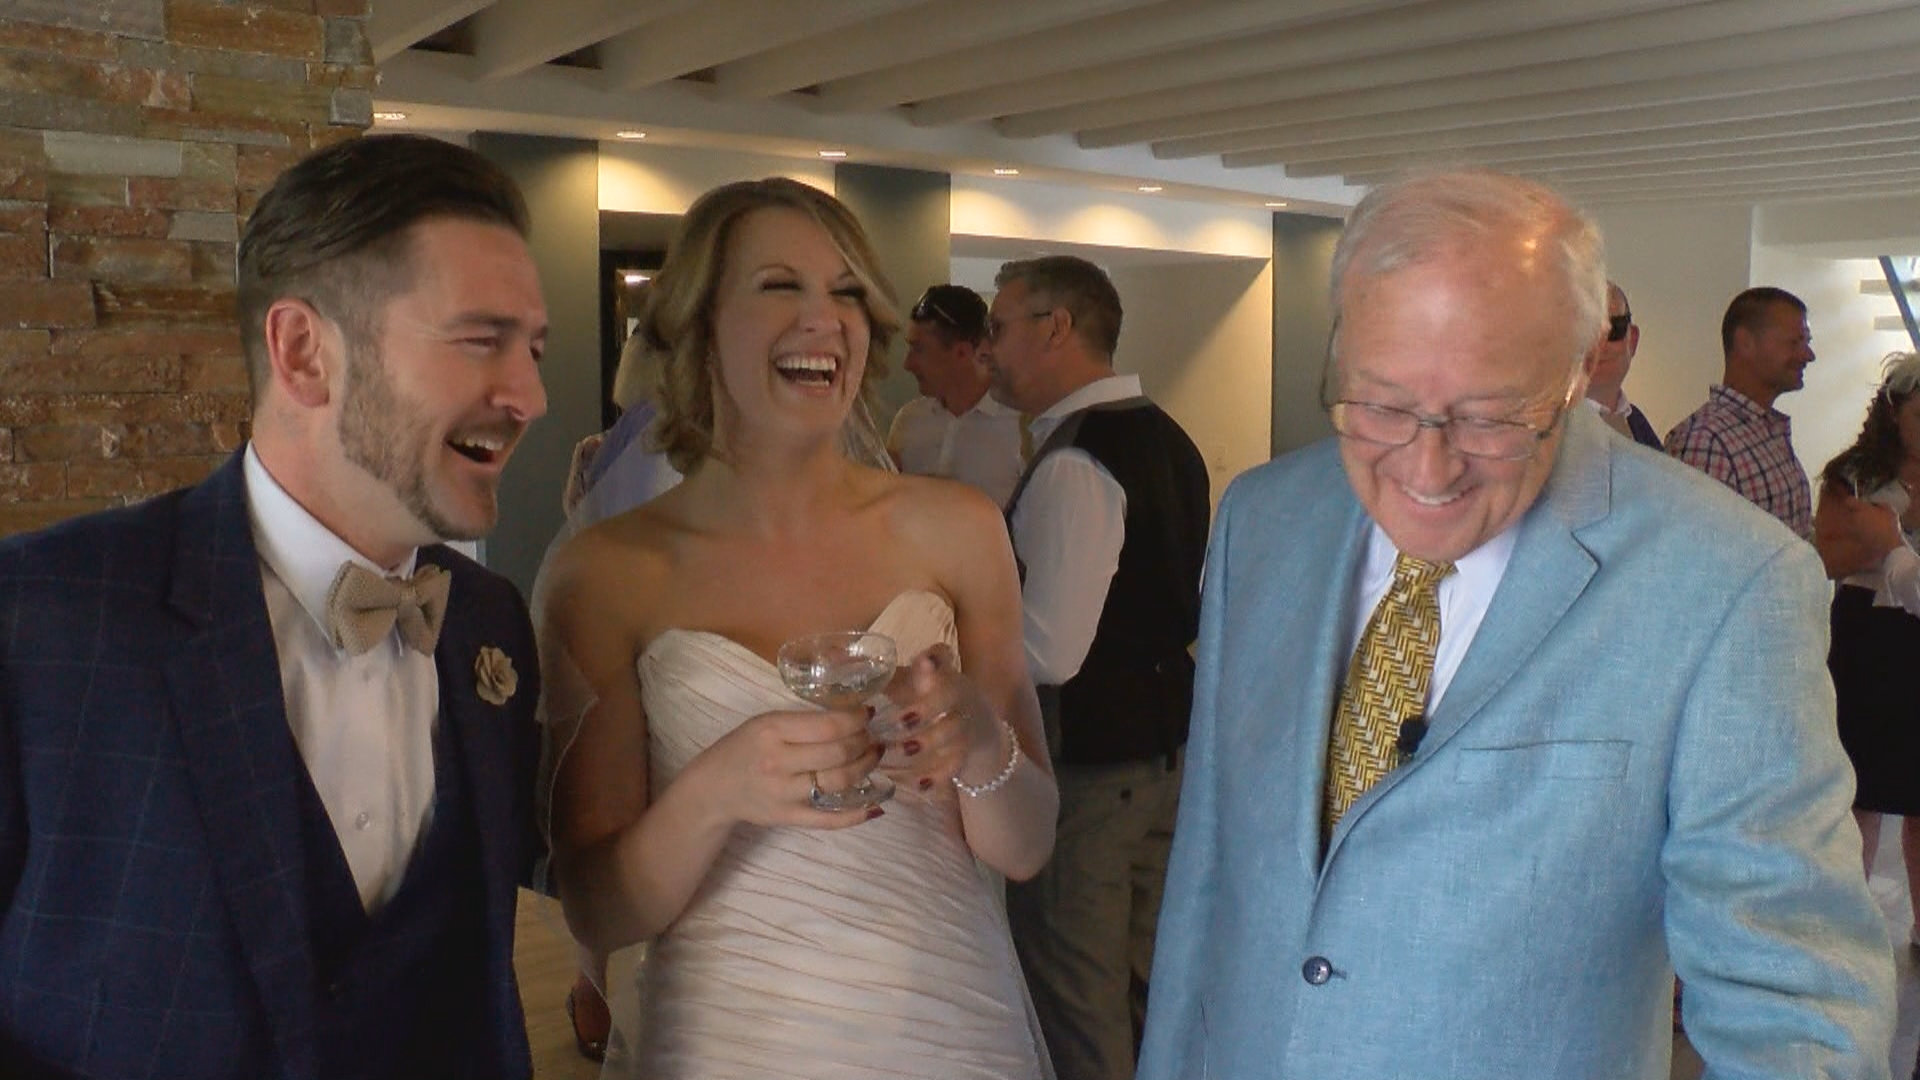 Tying the knot … it's big business for Las Vegas. See why getting hitched Vegas style is not what it used to be! (KSNV)